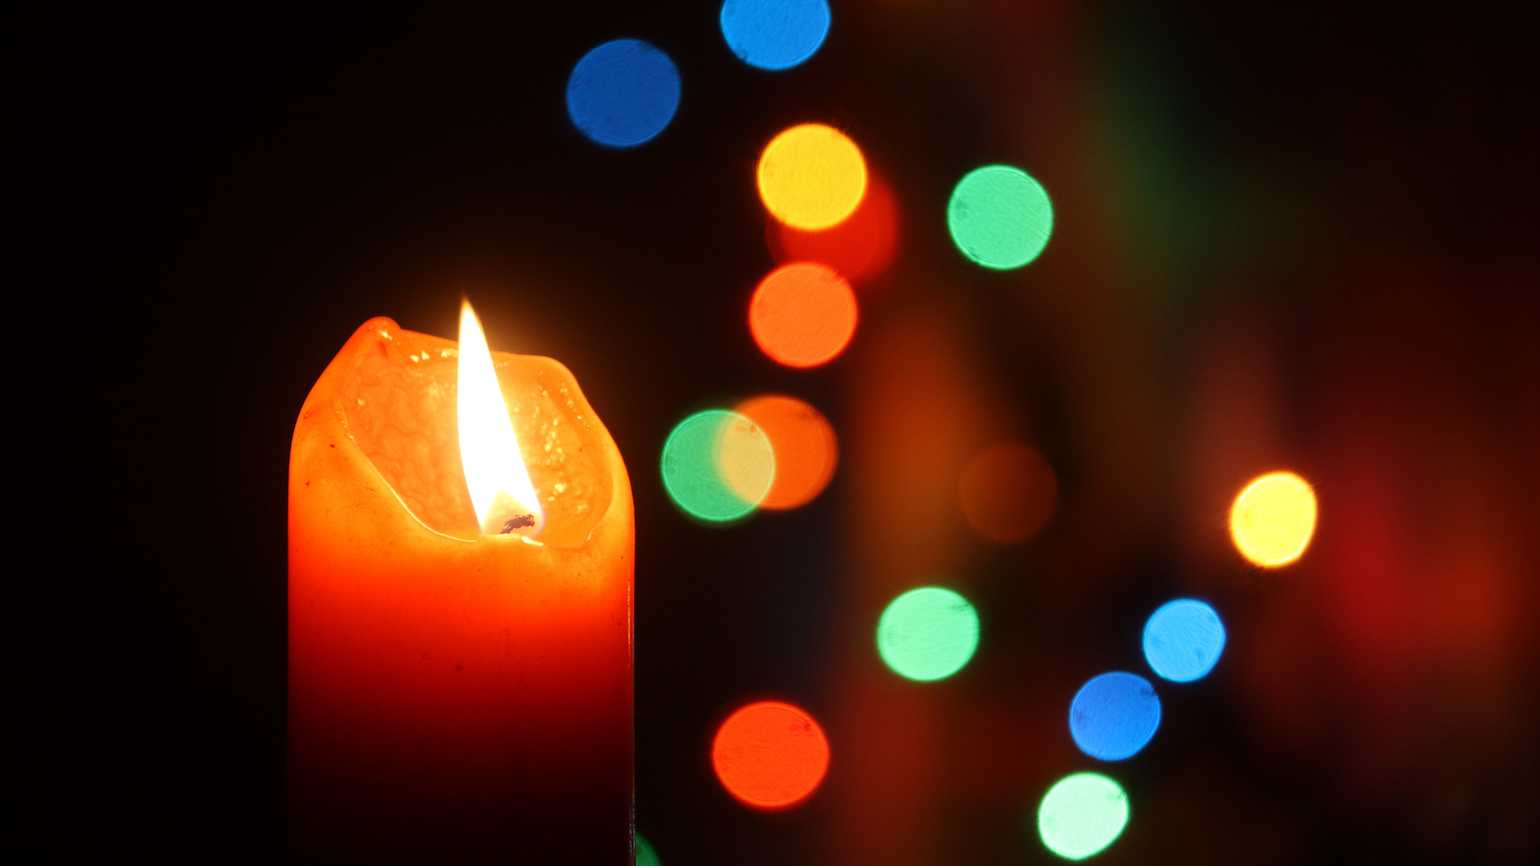 Grieving at Christmas